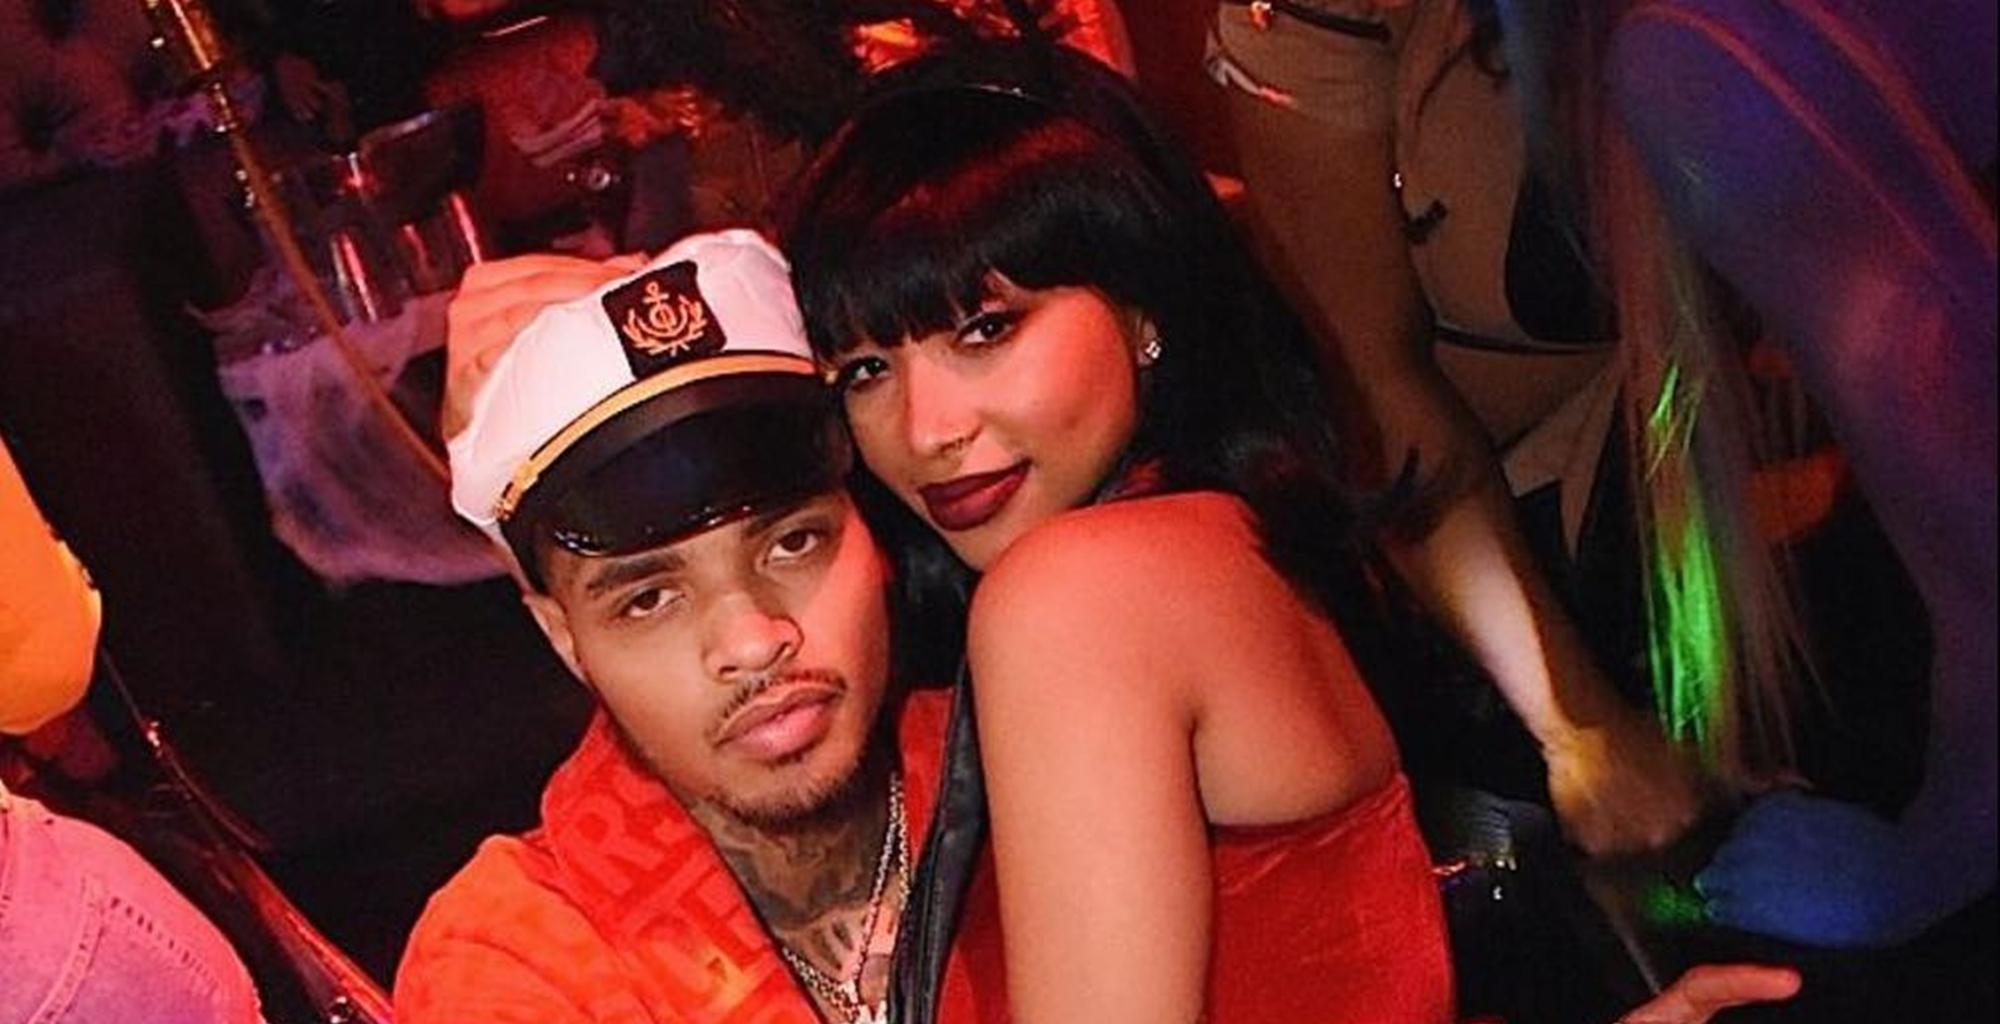 Tiny Harris' Daughter, Zonnique Pullins Celebrates Her Boyfriend's Birthday With Romantic Pics And A Video - Check Out Her Post Here